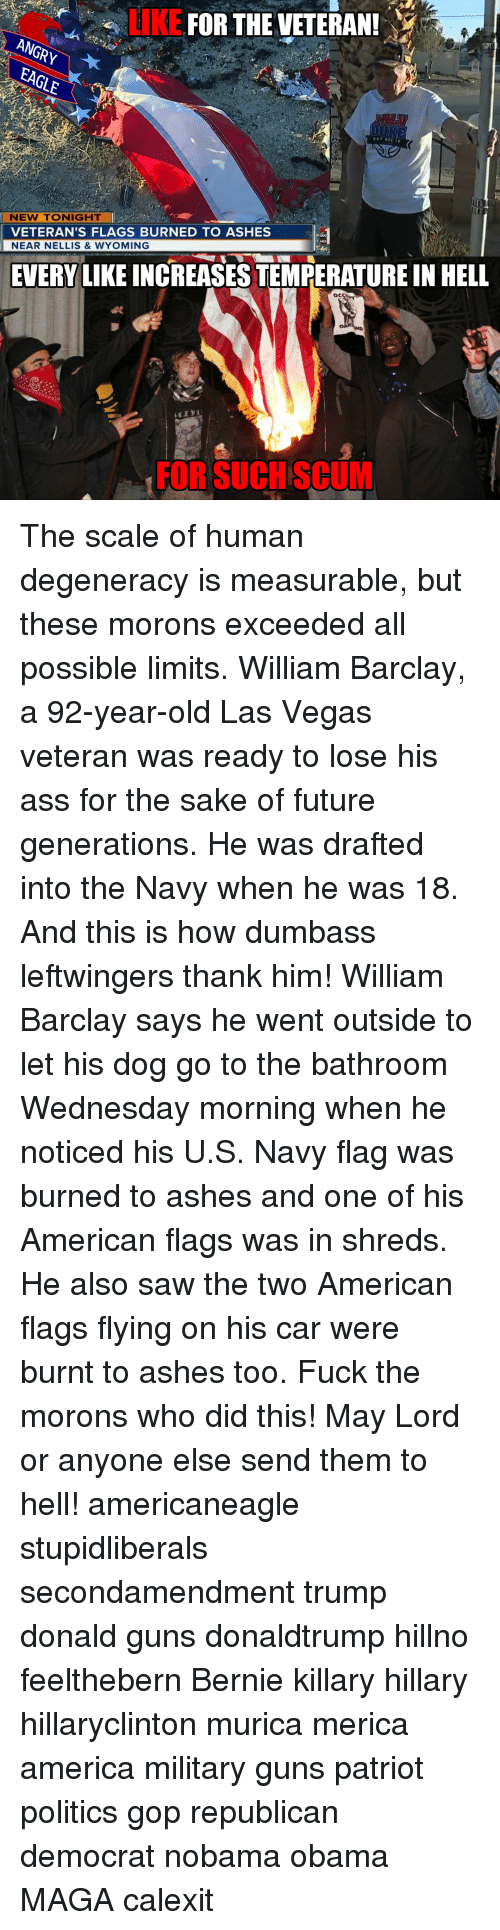 trump donald: LIKE  FOR THE VETERAN!  ANGRy  NEW TONIGHT  VETERAN'S FLAGS BURNED TO ASHES  NEAR NELLIS & WYOMING  EVERY LIKE INCREASESTEMPERATURE IN HELL  OCI  FOR SUCH SCUM The scale of human degeneracy is measurable, but these morons exceeded all possible limits. William Barclay, a 92-year-old Las Vegas veteran was ready to lose his ass for the sake of future generations. He was drafted into the Navy when he was 18. And this is how dumbass leftwingers thank him! William Barclay says he went outside to let his dog go to the bathroom Wednesday morning when he noticed his U.S. Navy flag was burned to ashes and one of his American flags was in shreds. He also saw the two American flags flying on his car were burnt to ashes too. Fuck the morons who did this! May Lord or anyone else send them to hell! americaneagle stupidliberals secondamendment trump donald guns donaldtrump hillno feelthebern Bernie killary hillary hillaryclinton murica merica america military guns patriot politics gop republican democrat nobama obama MAGA calexit